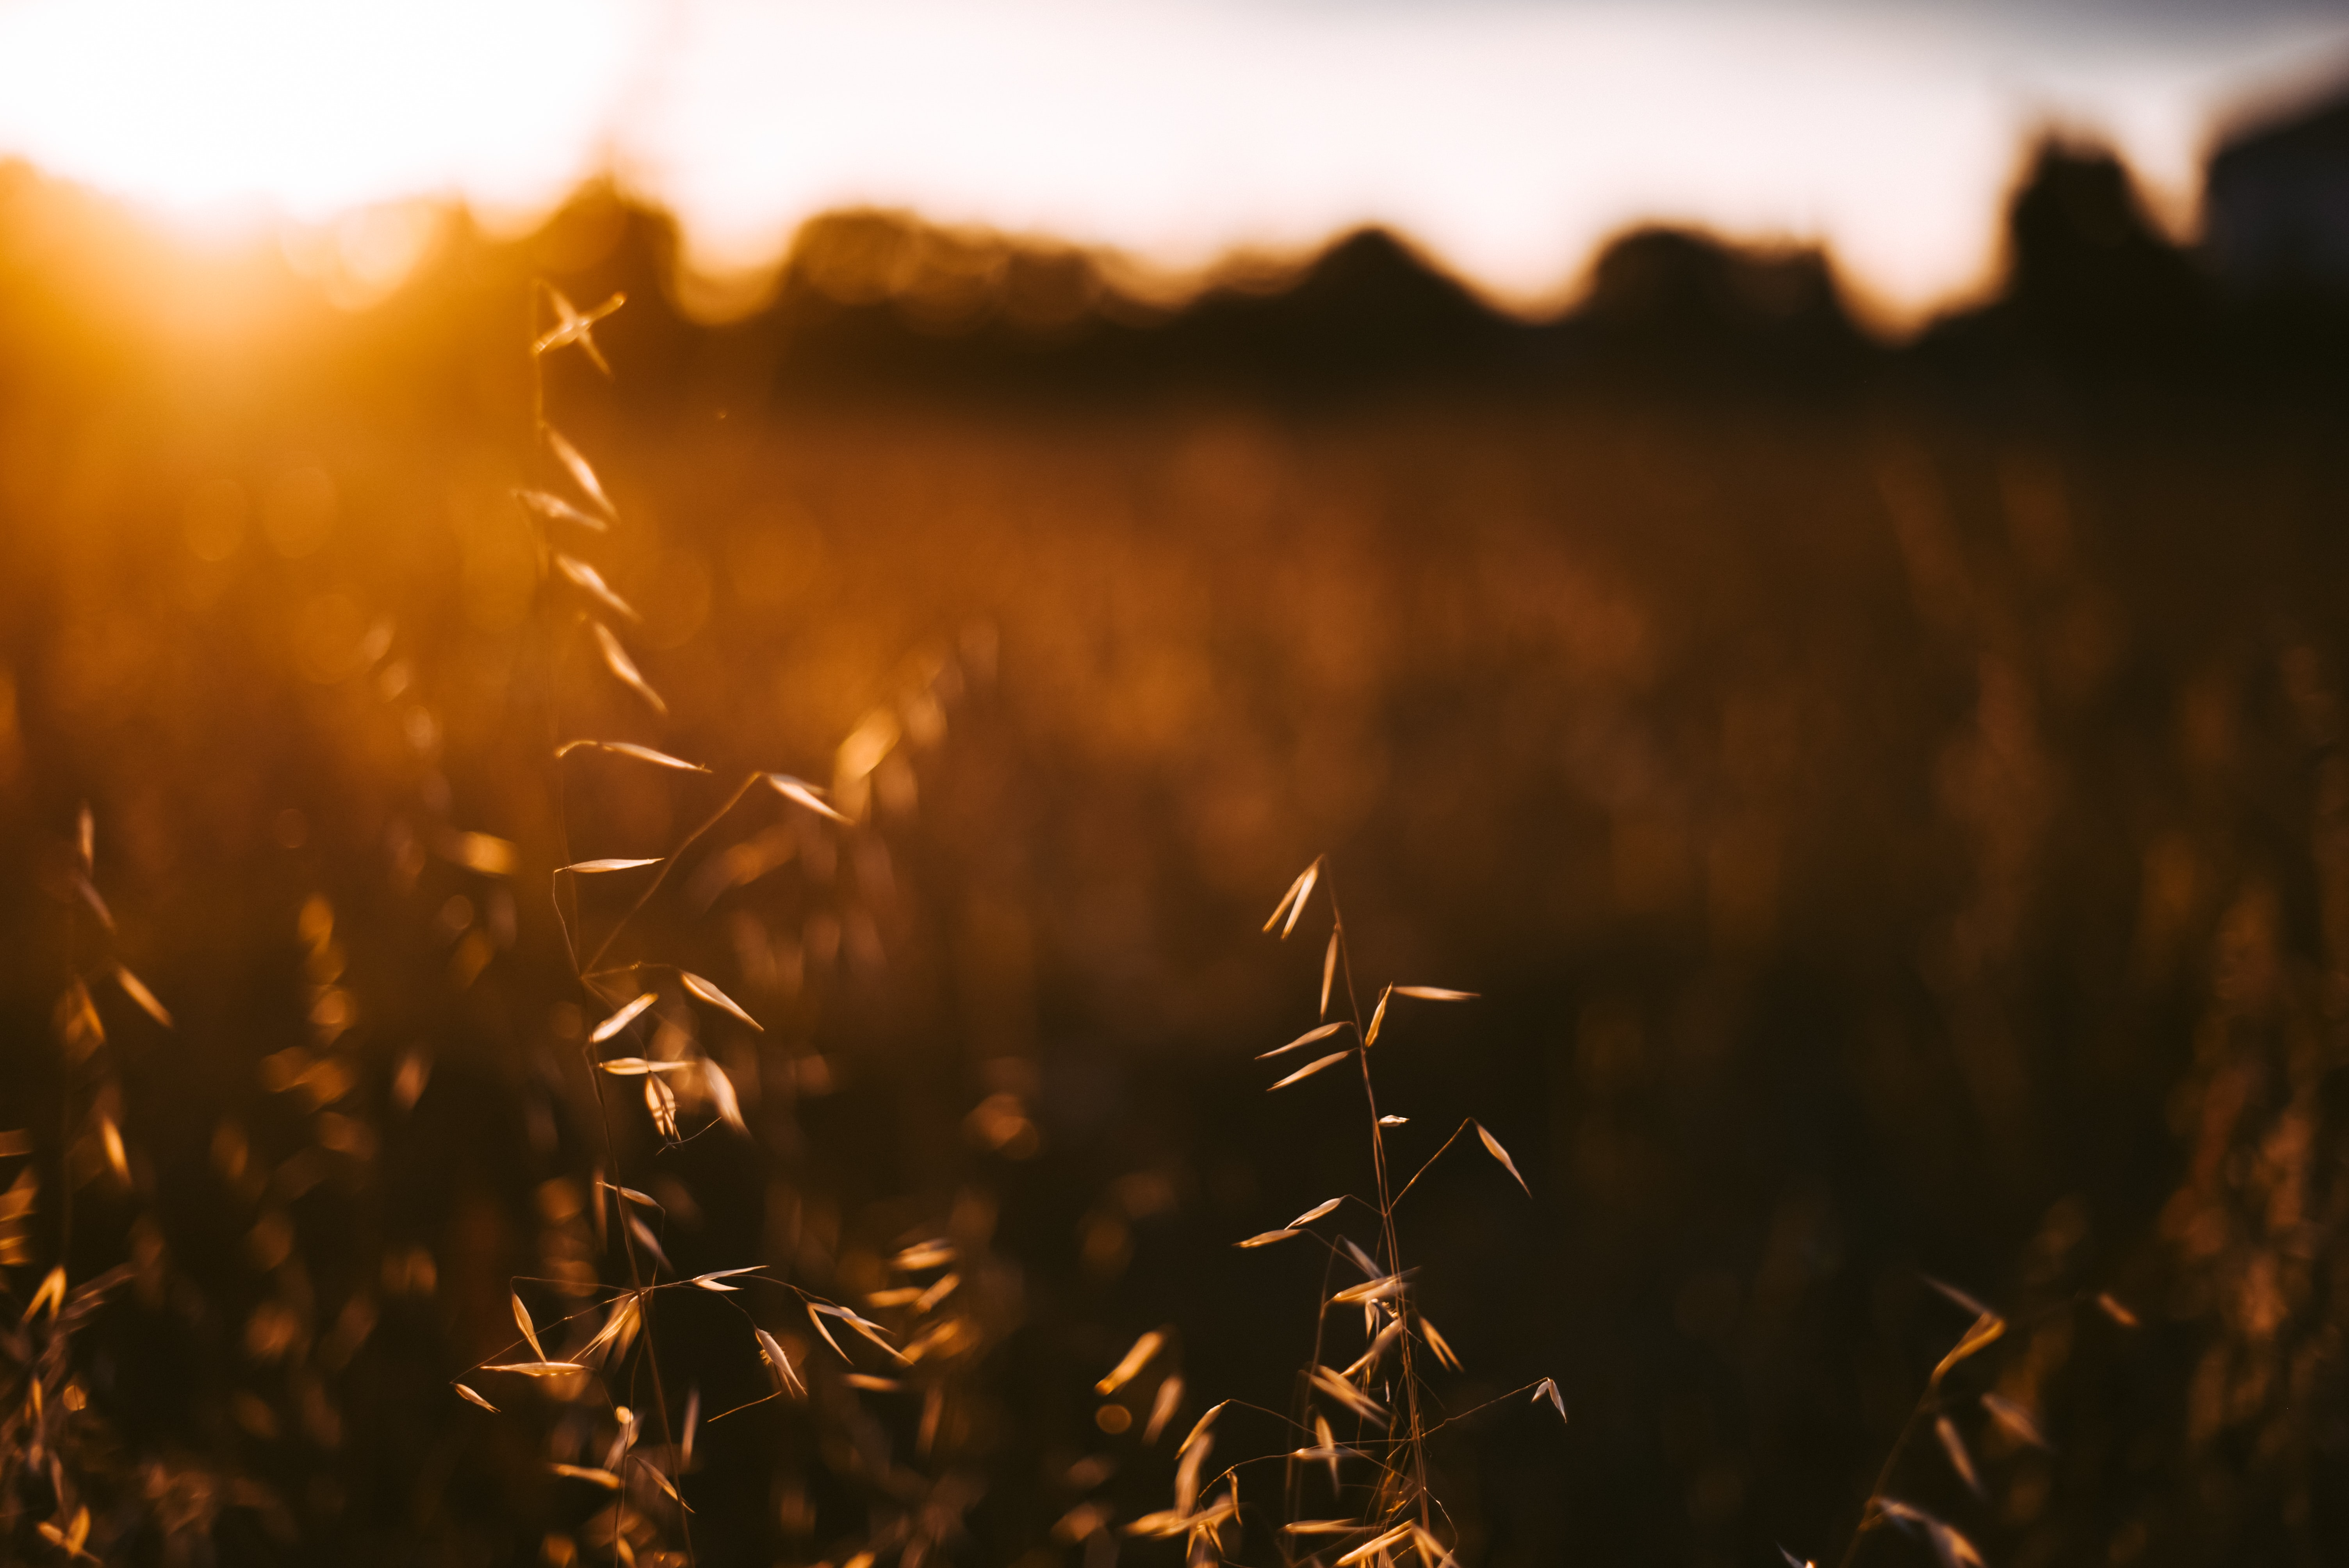 selective focus photography of plant during golden hour